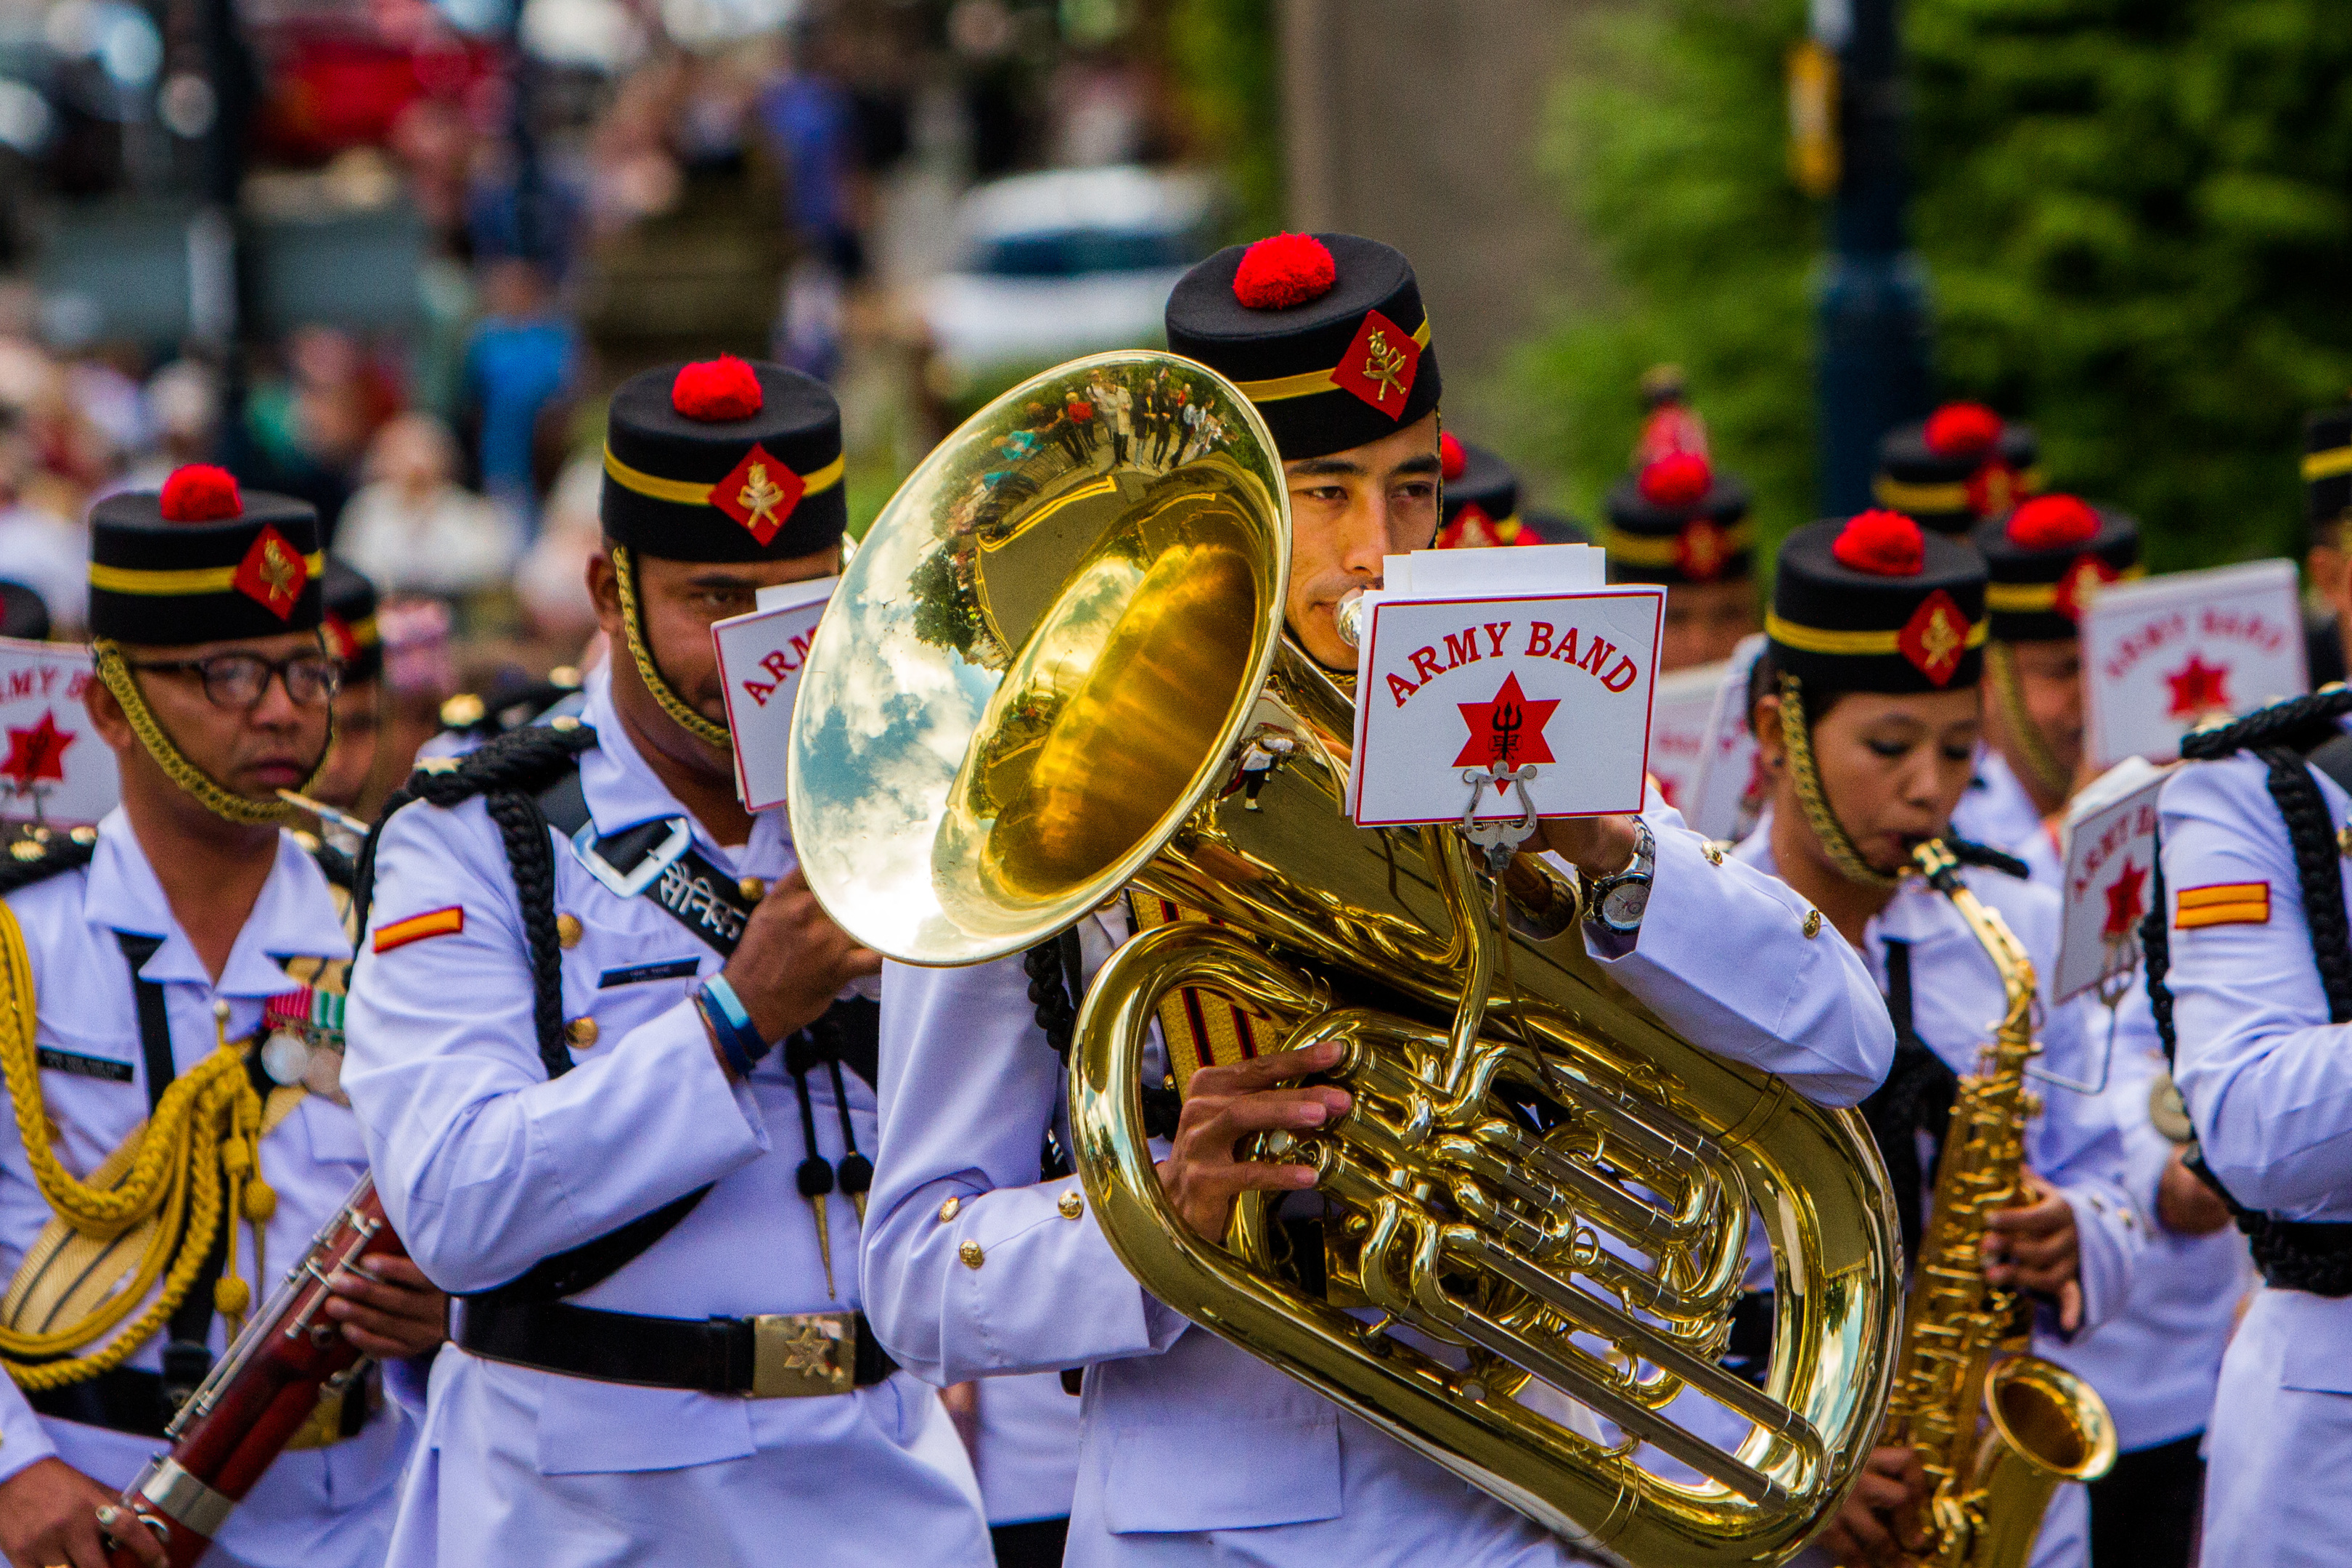 Nepal nepali Army Band during the parade.